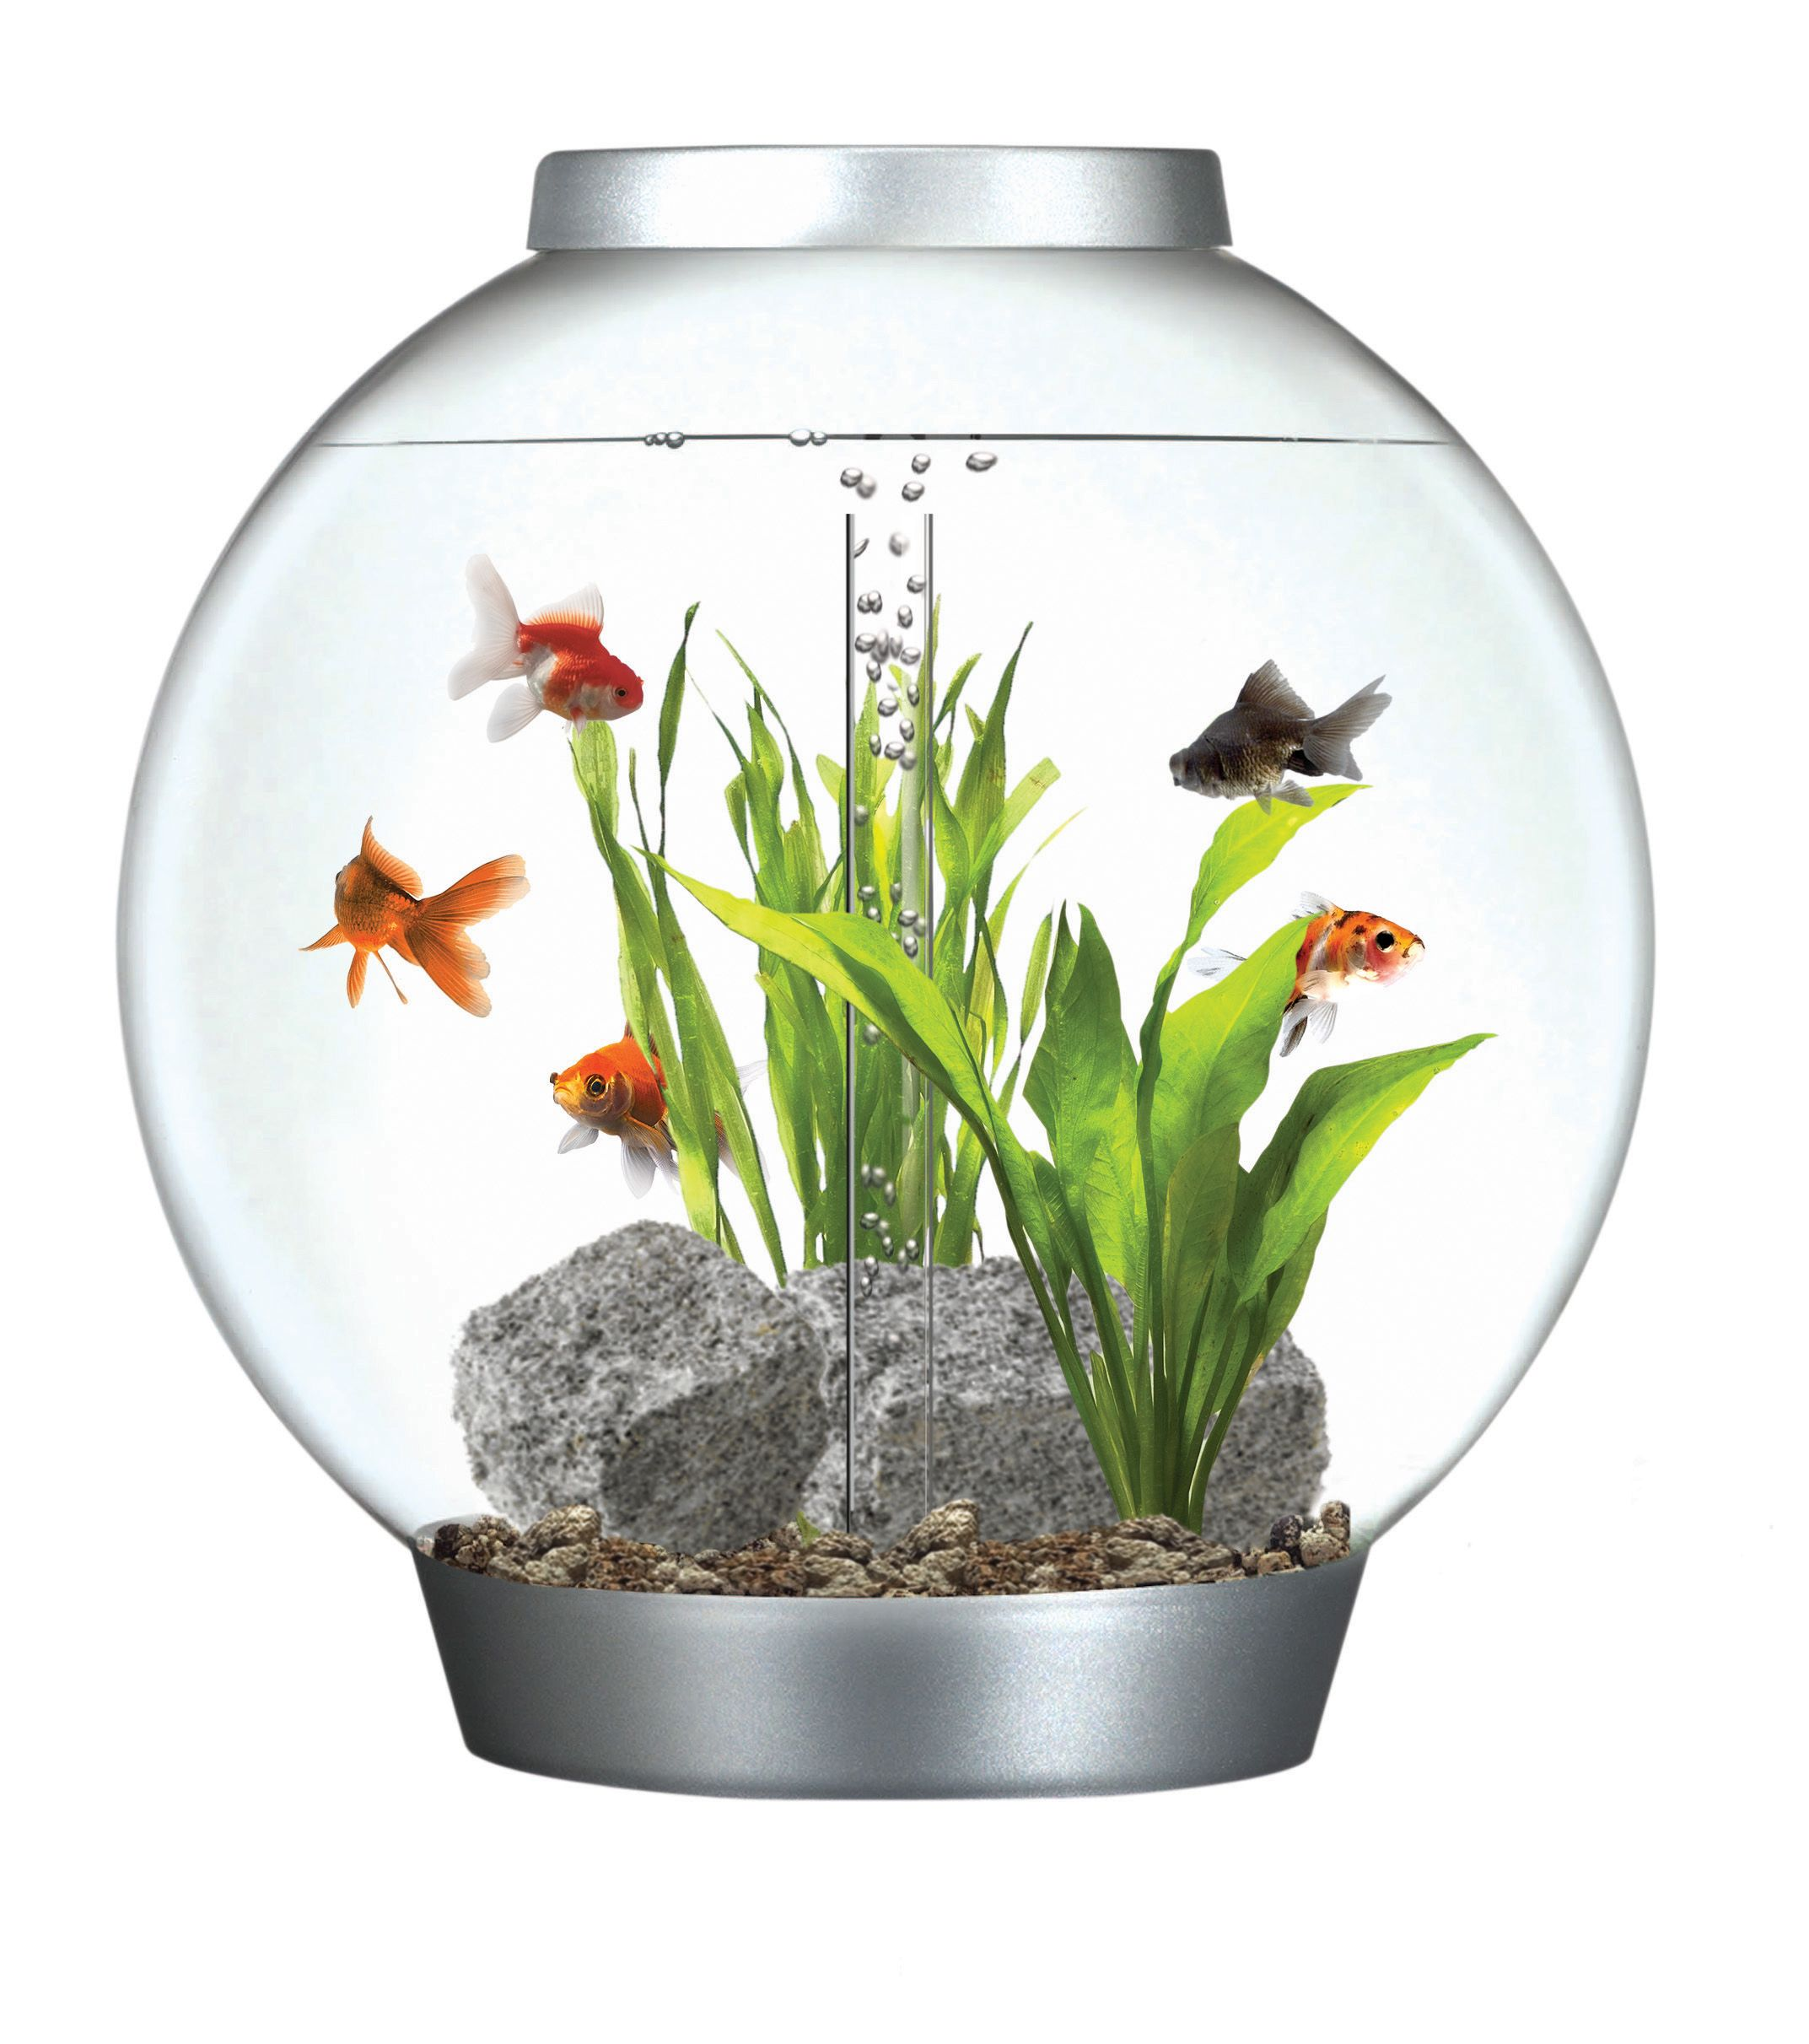 I Have Always Wanted One Of These Fish Tank Orbs So Sleek And Modern I Love It Fish Tank Biorb Planted Aquarium